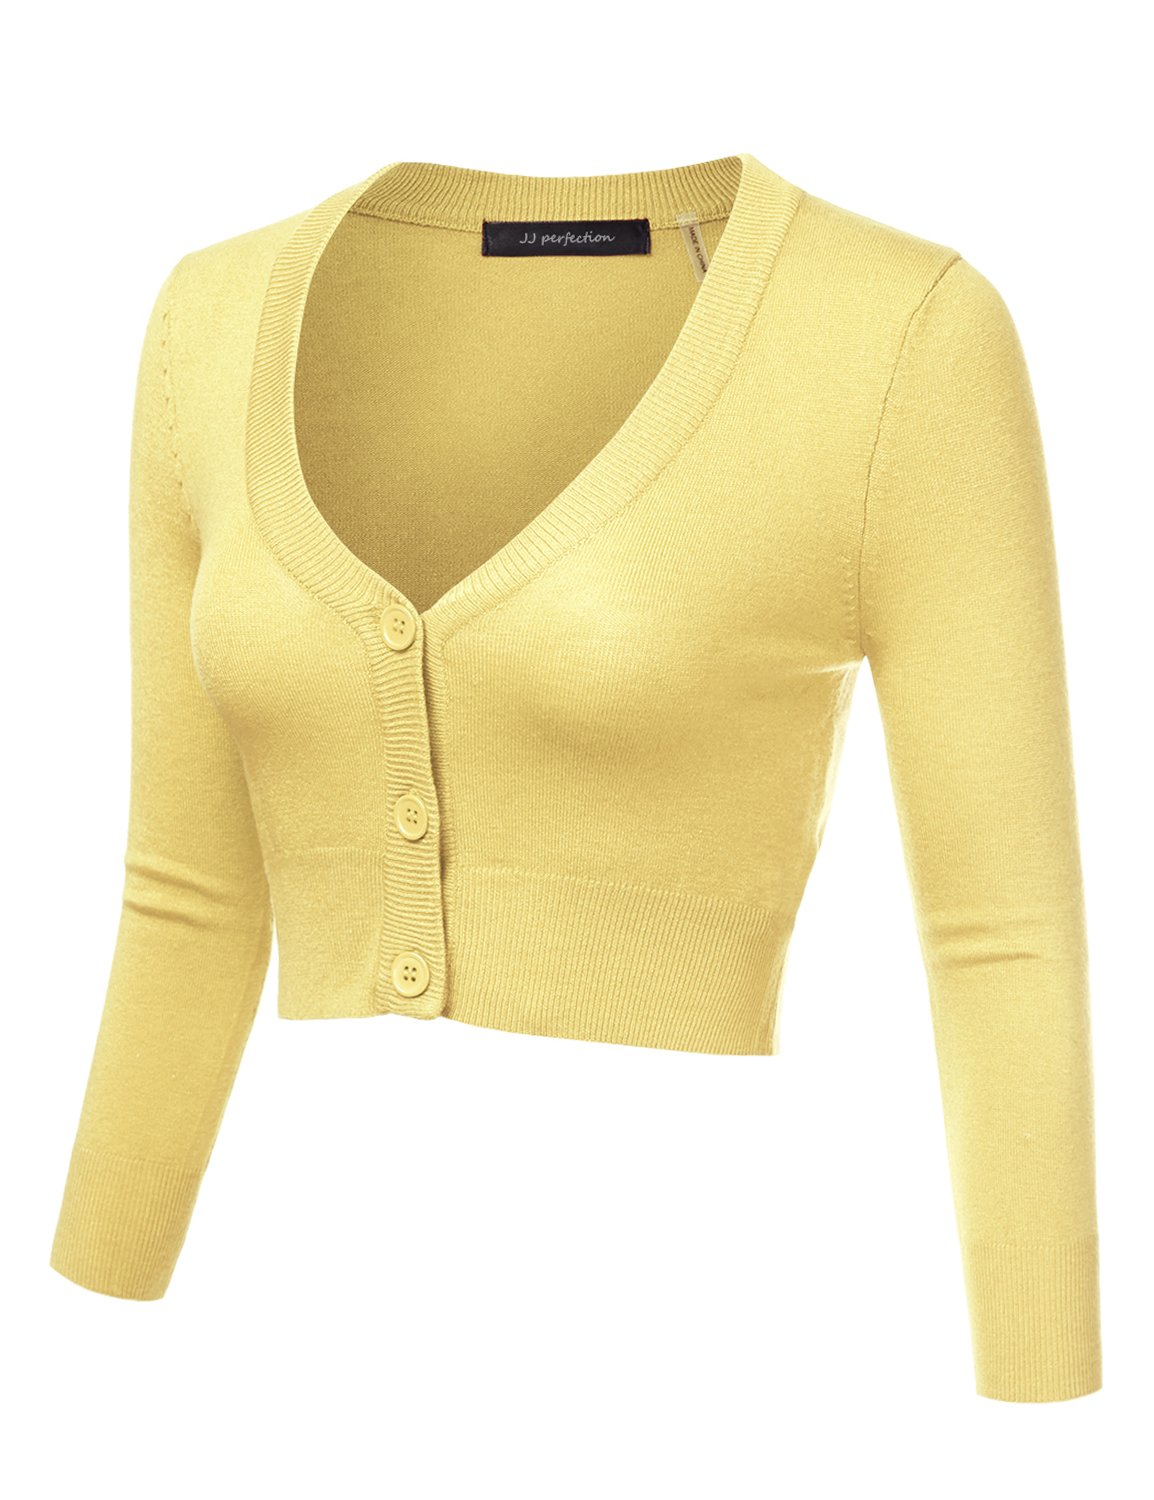 16337807c53598 JJ Perfection Women's Solid Woven Button Down 3/4 Sleeve Cropped Cardigan  BABYYELLOW L < Cardigans < Clothing, Shoes & Jewelry - tibs